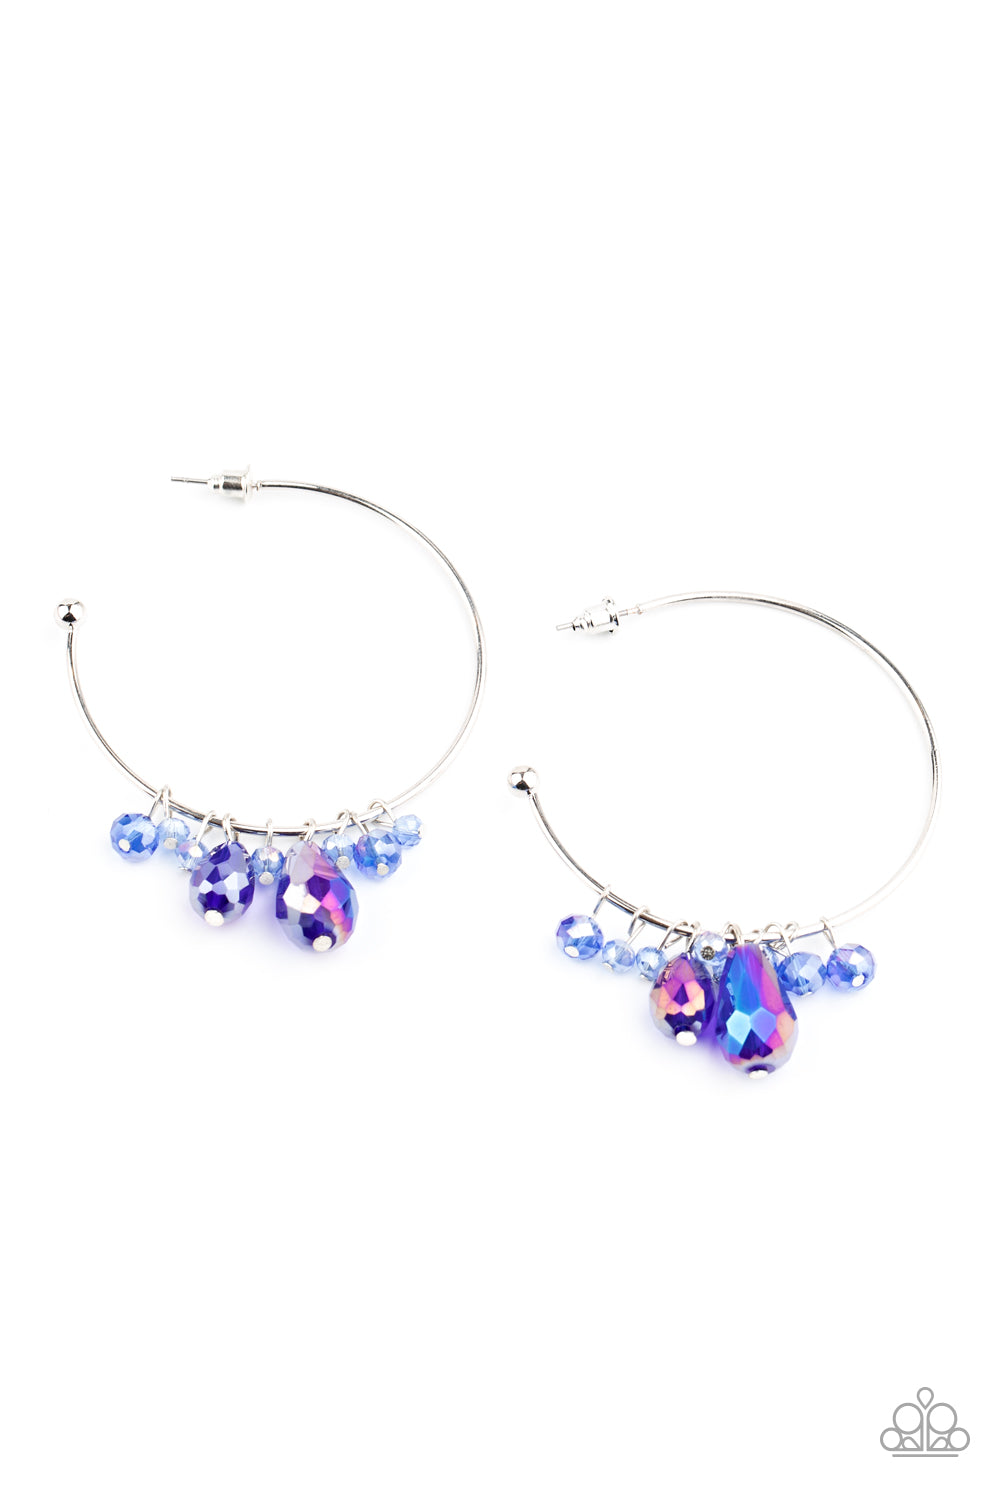 five-dollar-jewelry-dazzling-downpour-blue-earrings-paparazzi-accessories